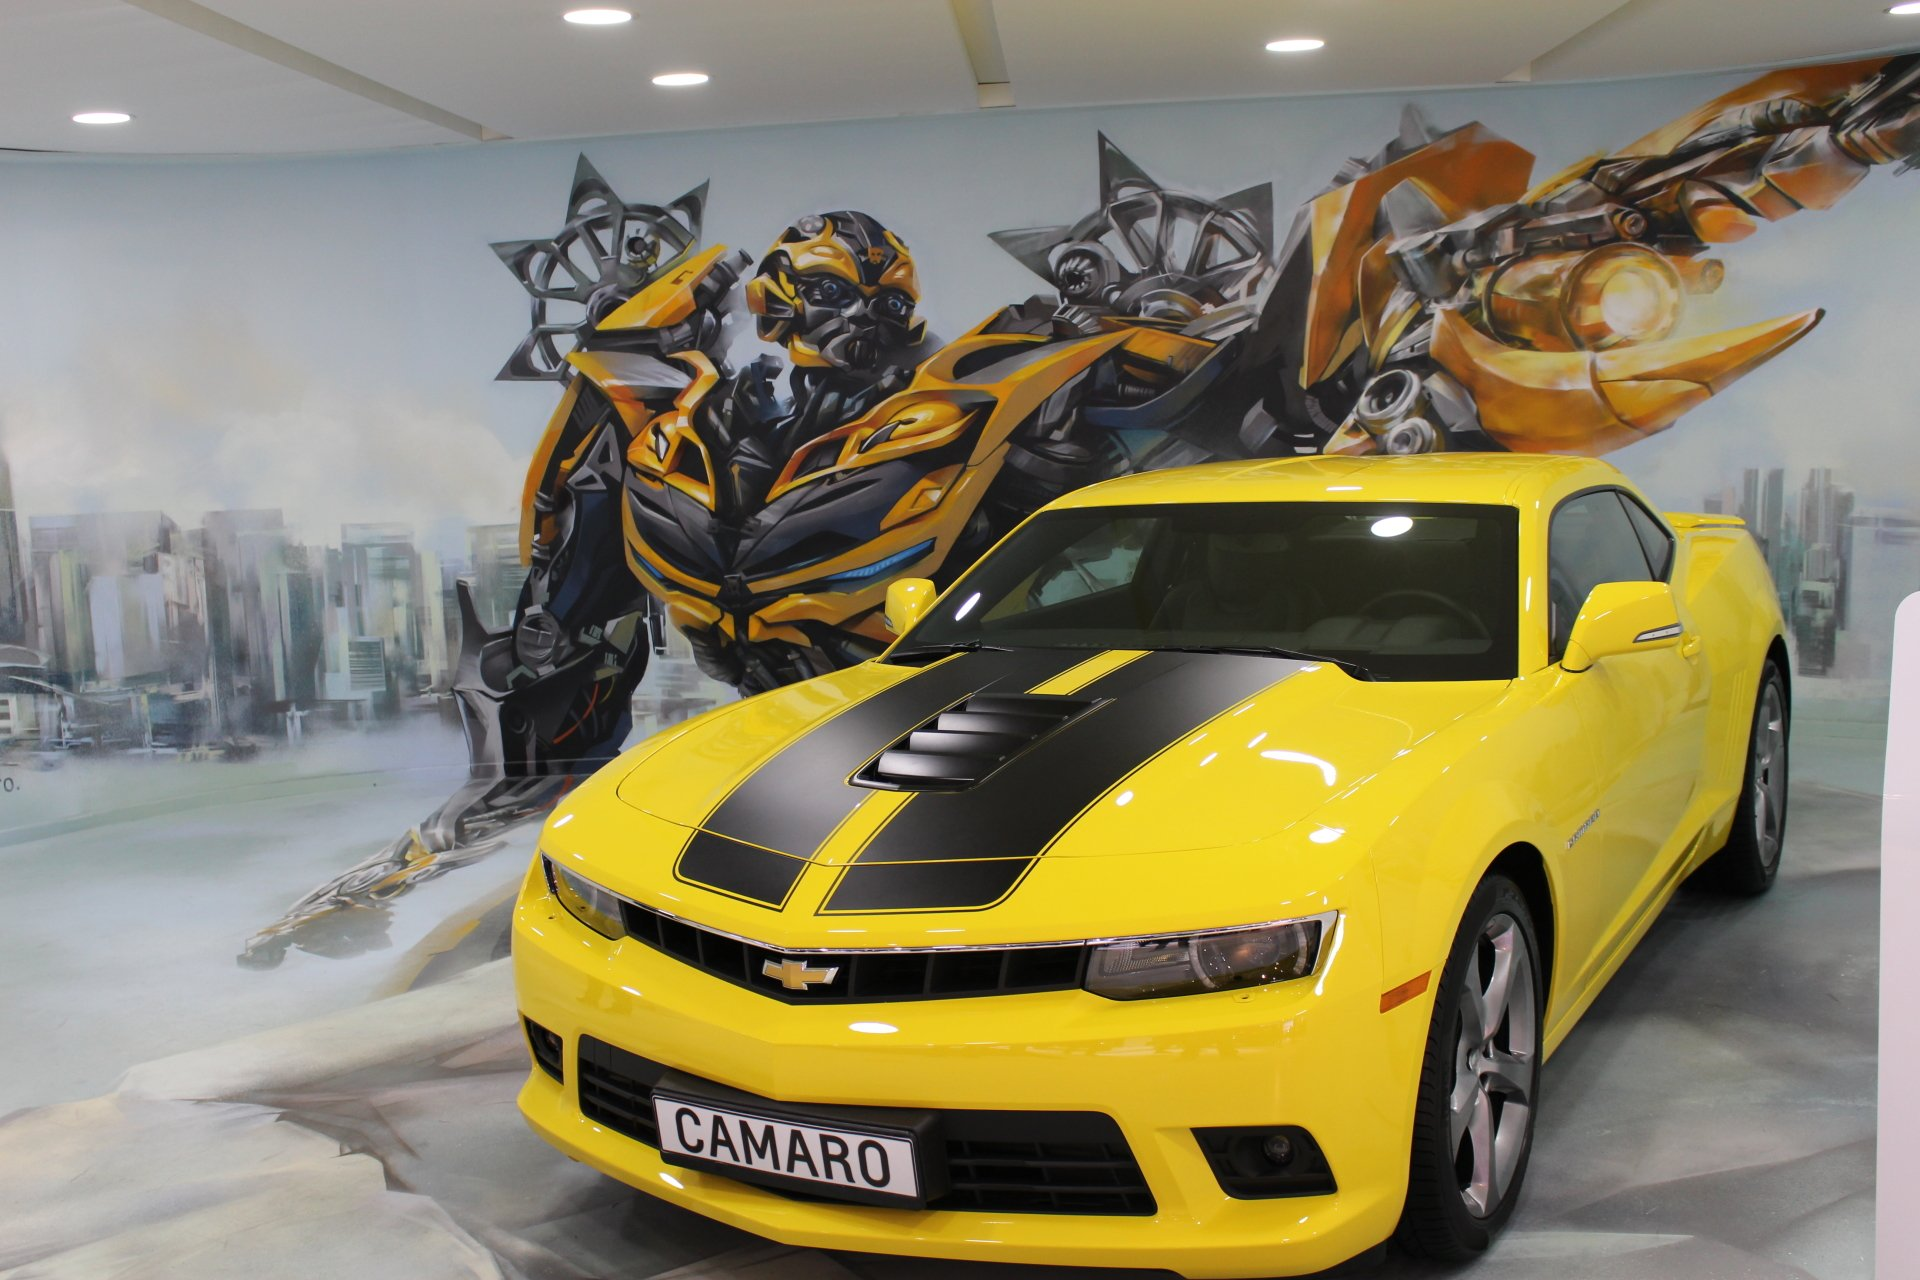 Vehicles - Chevrolet Camaro  Bumblebee (Transformers) Wallpaper